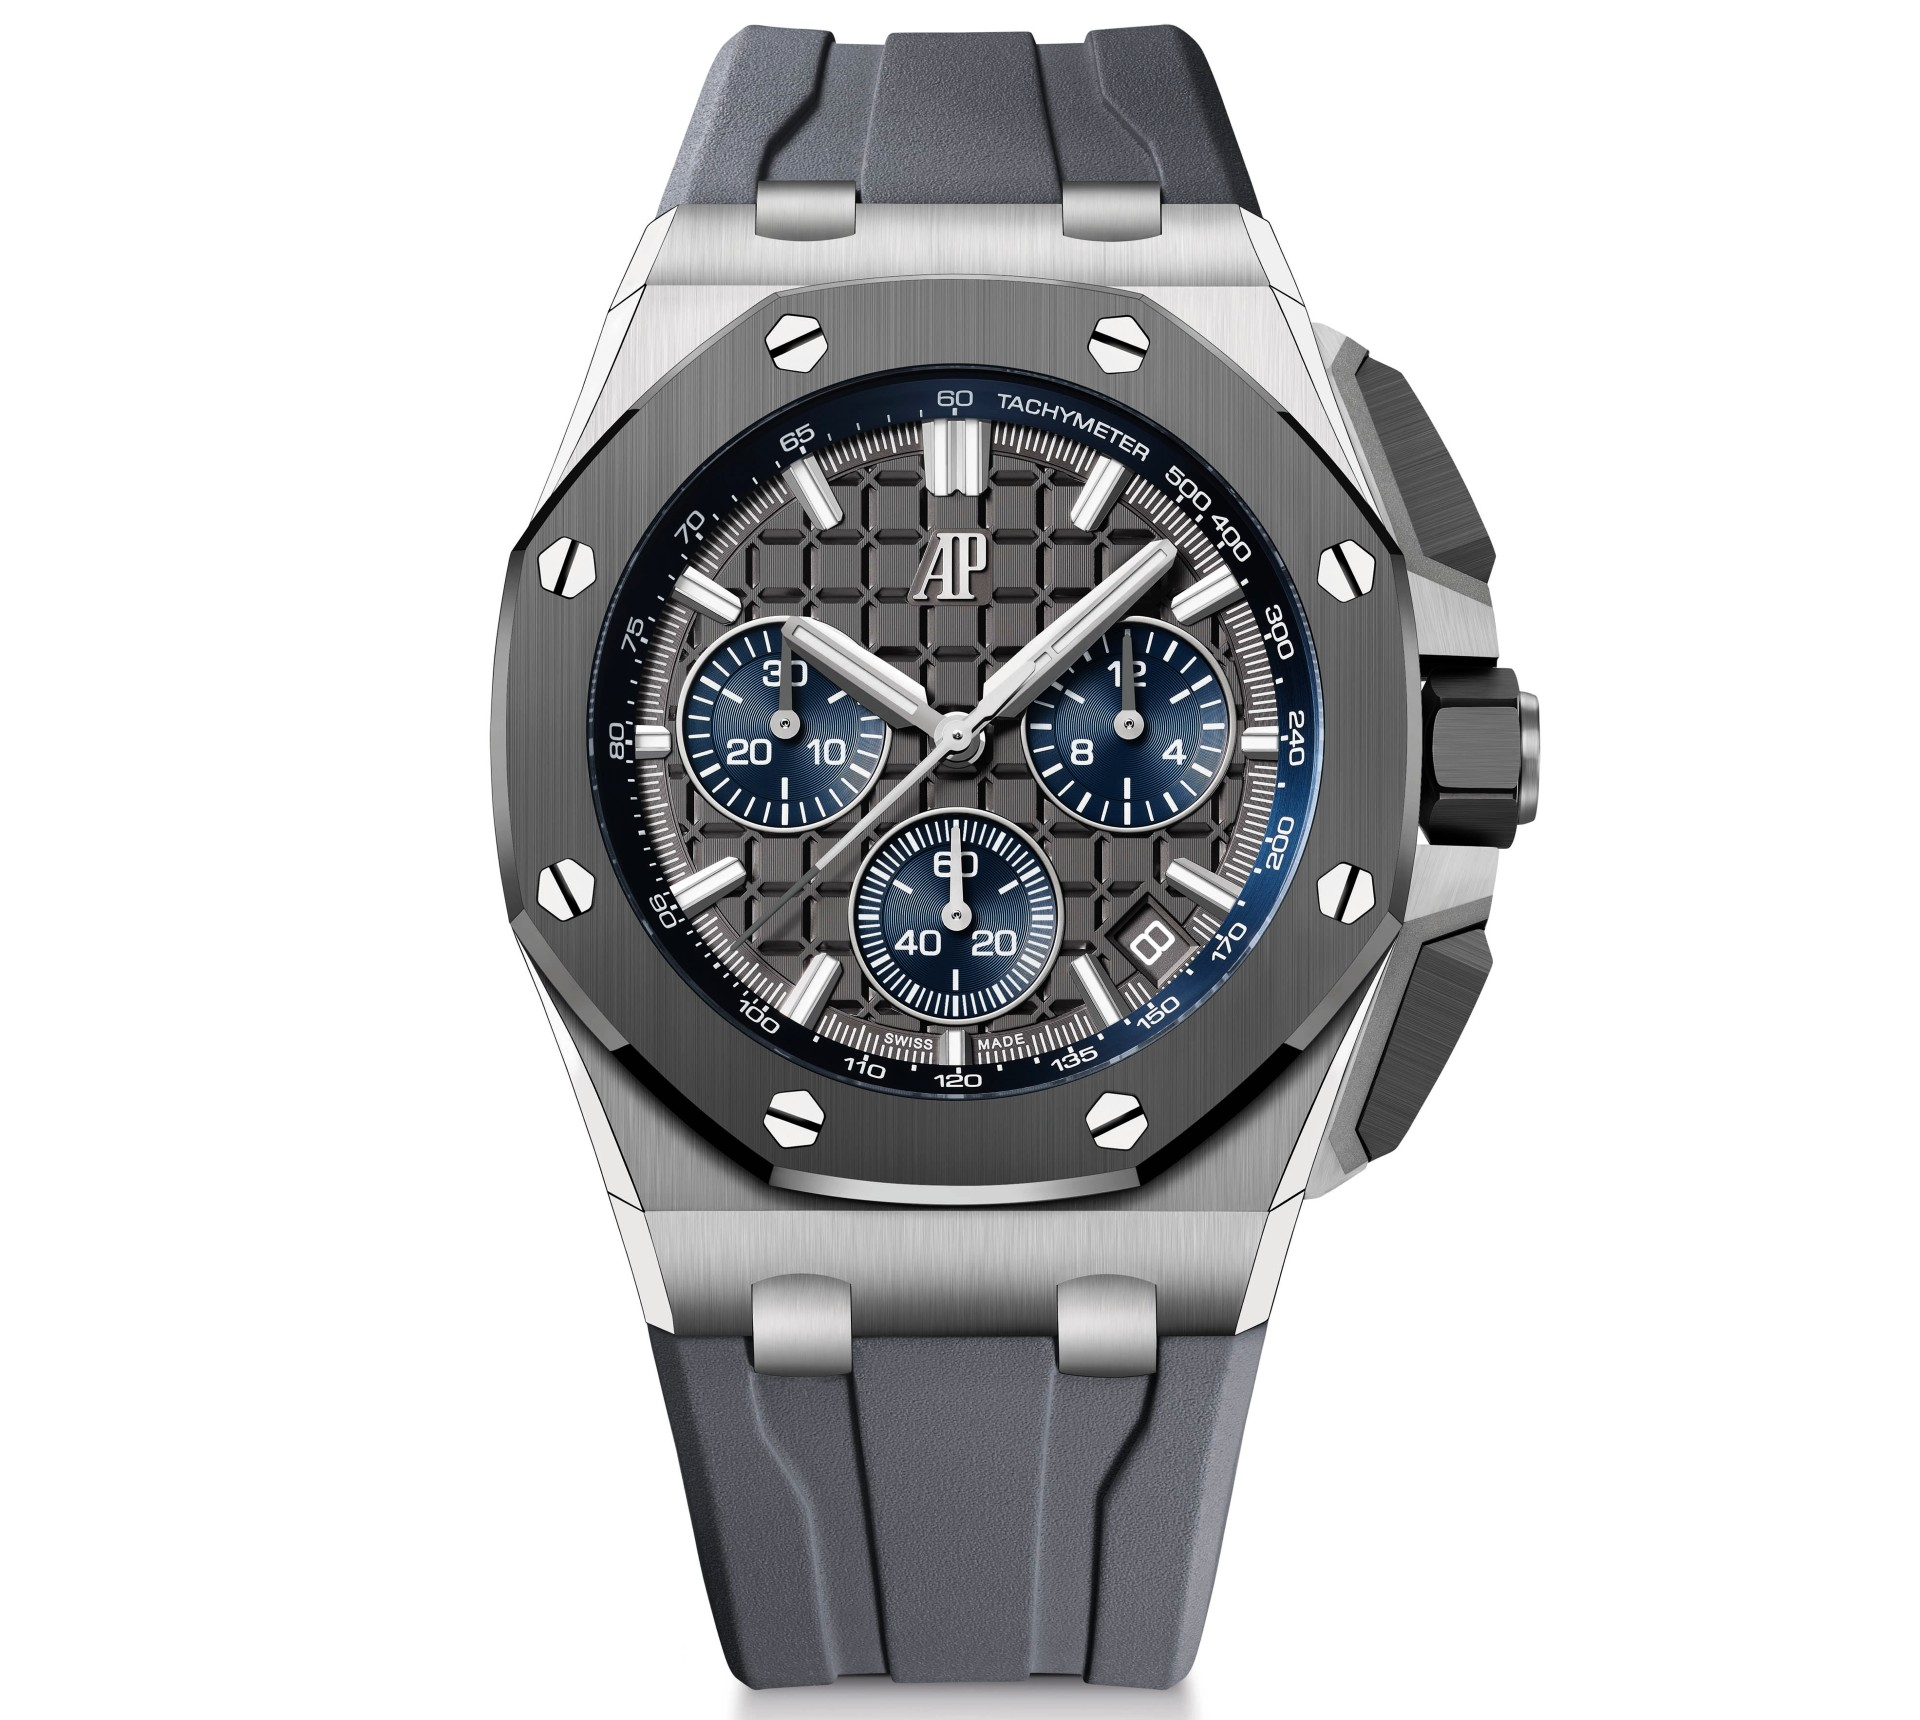 43mm Royal Oak Offshore in titanium with grey dial 1